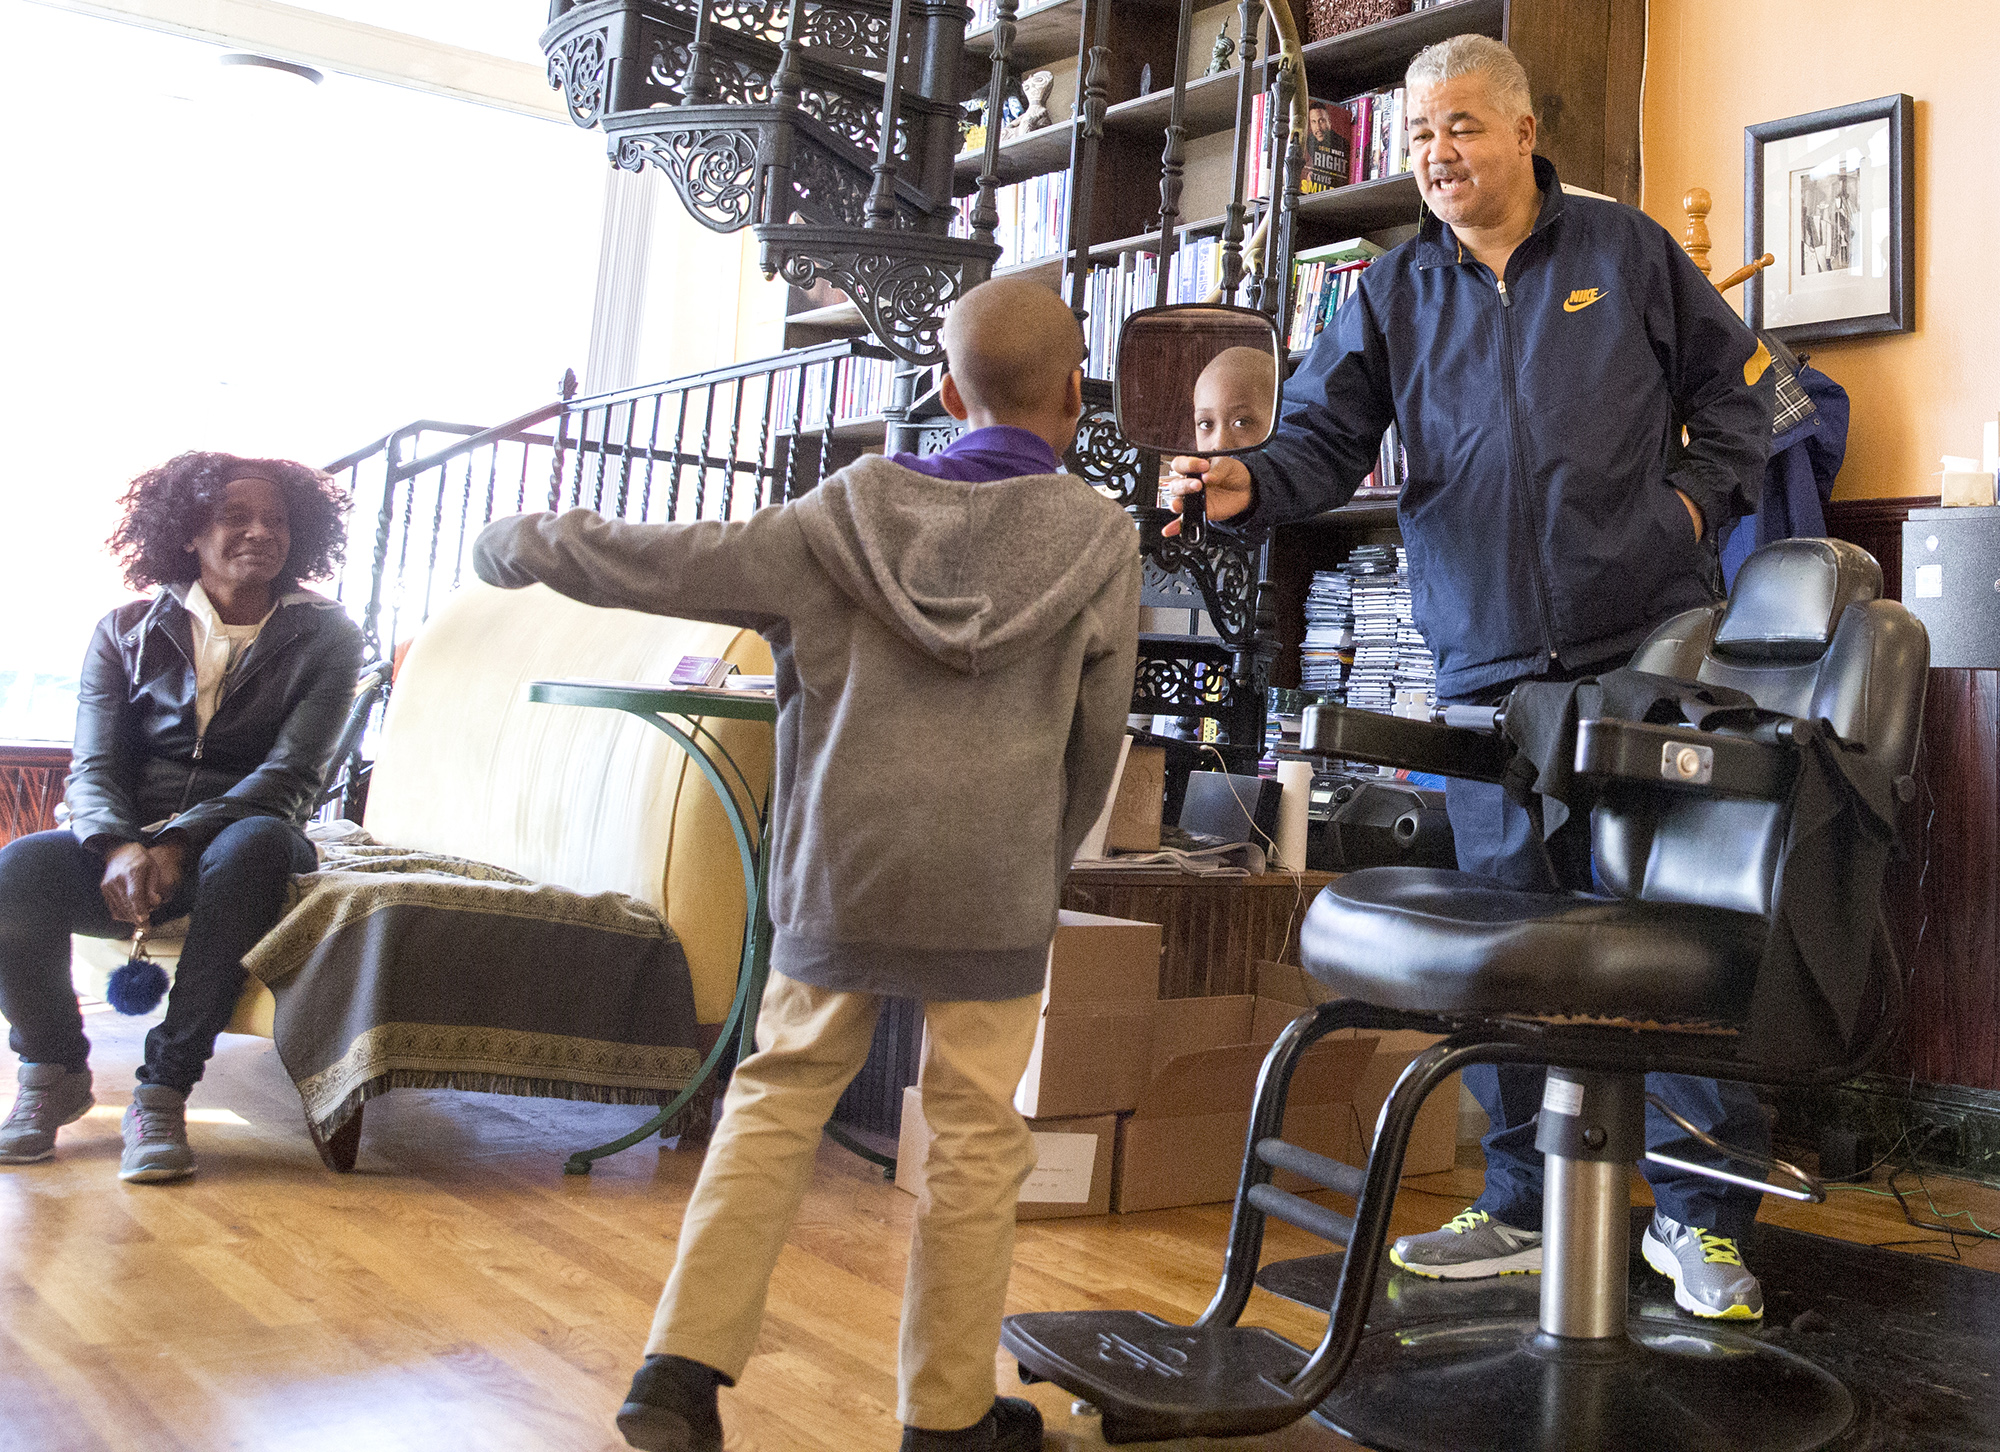 RIcky Phaison holds a mirror so a young customer can check his haircut. Photo by Antonella Crescimbeni